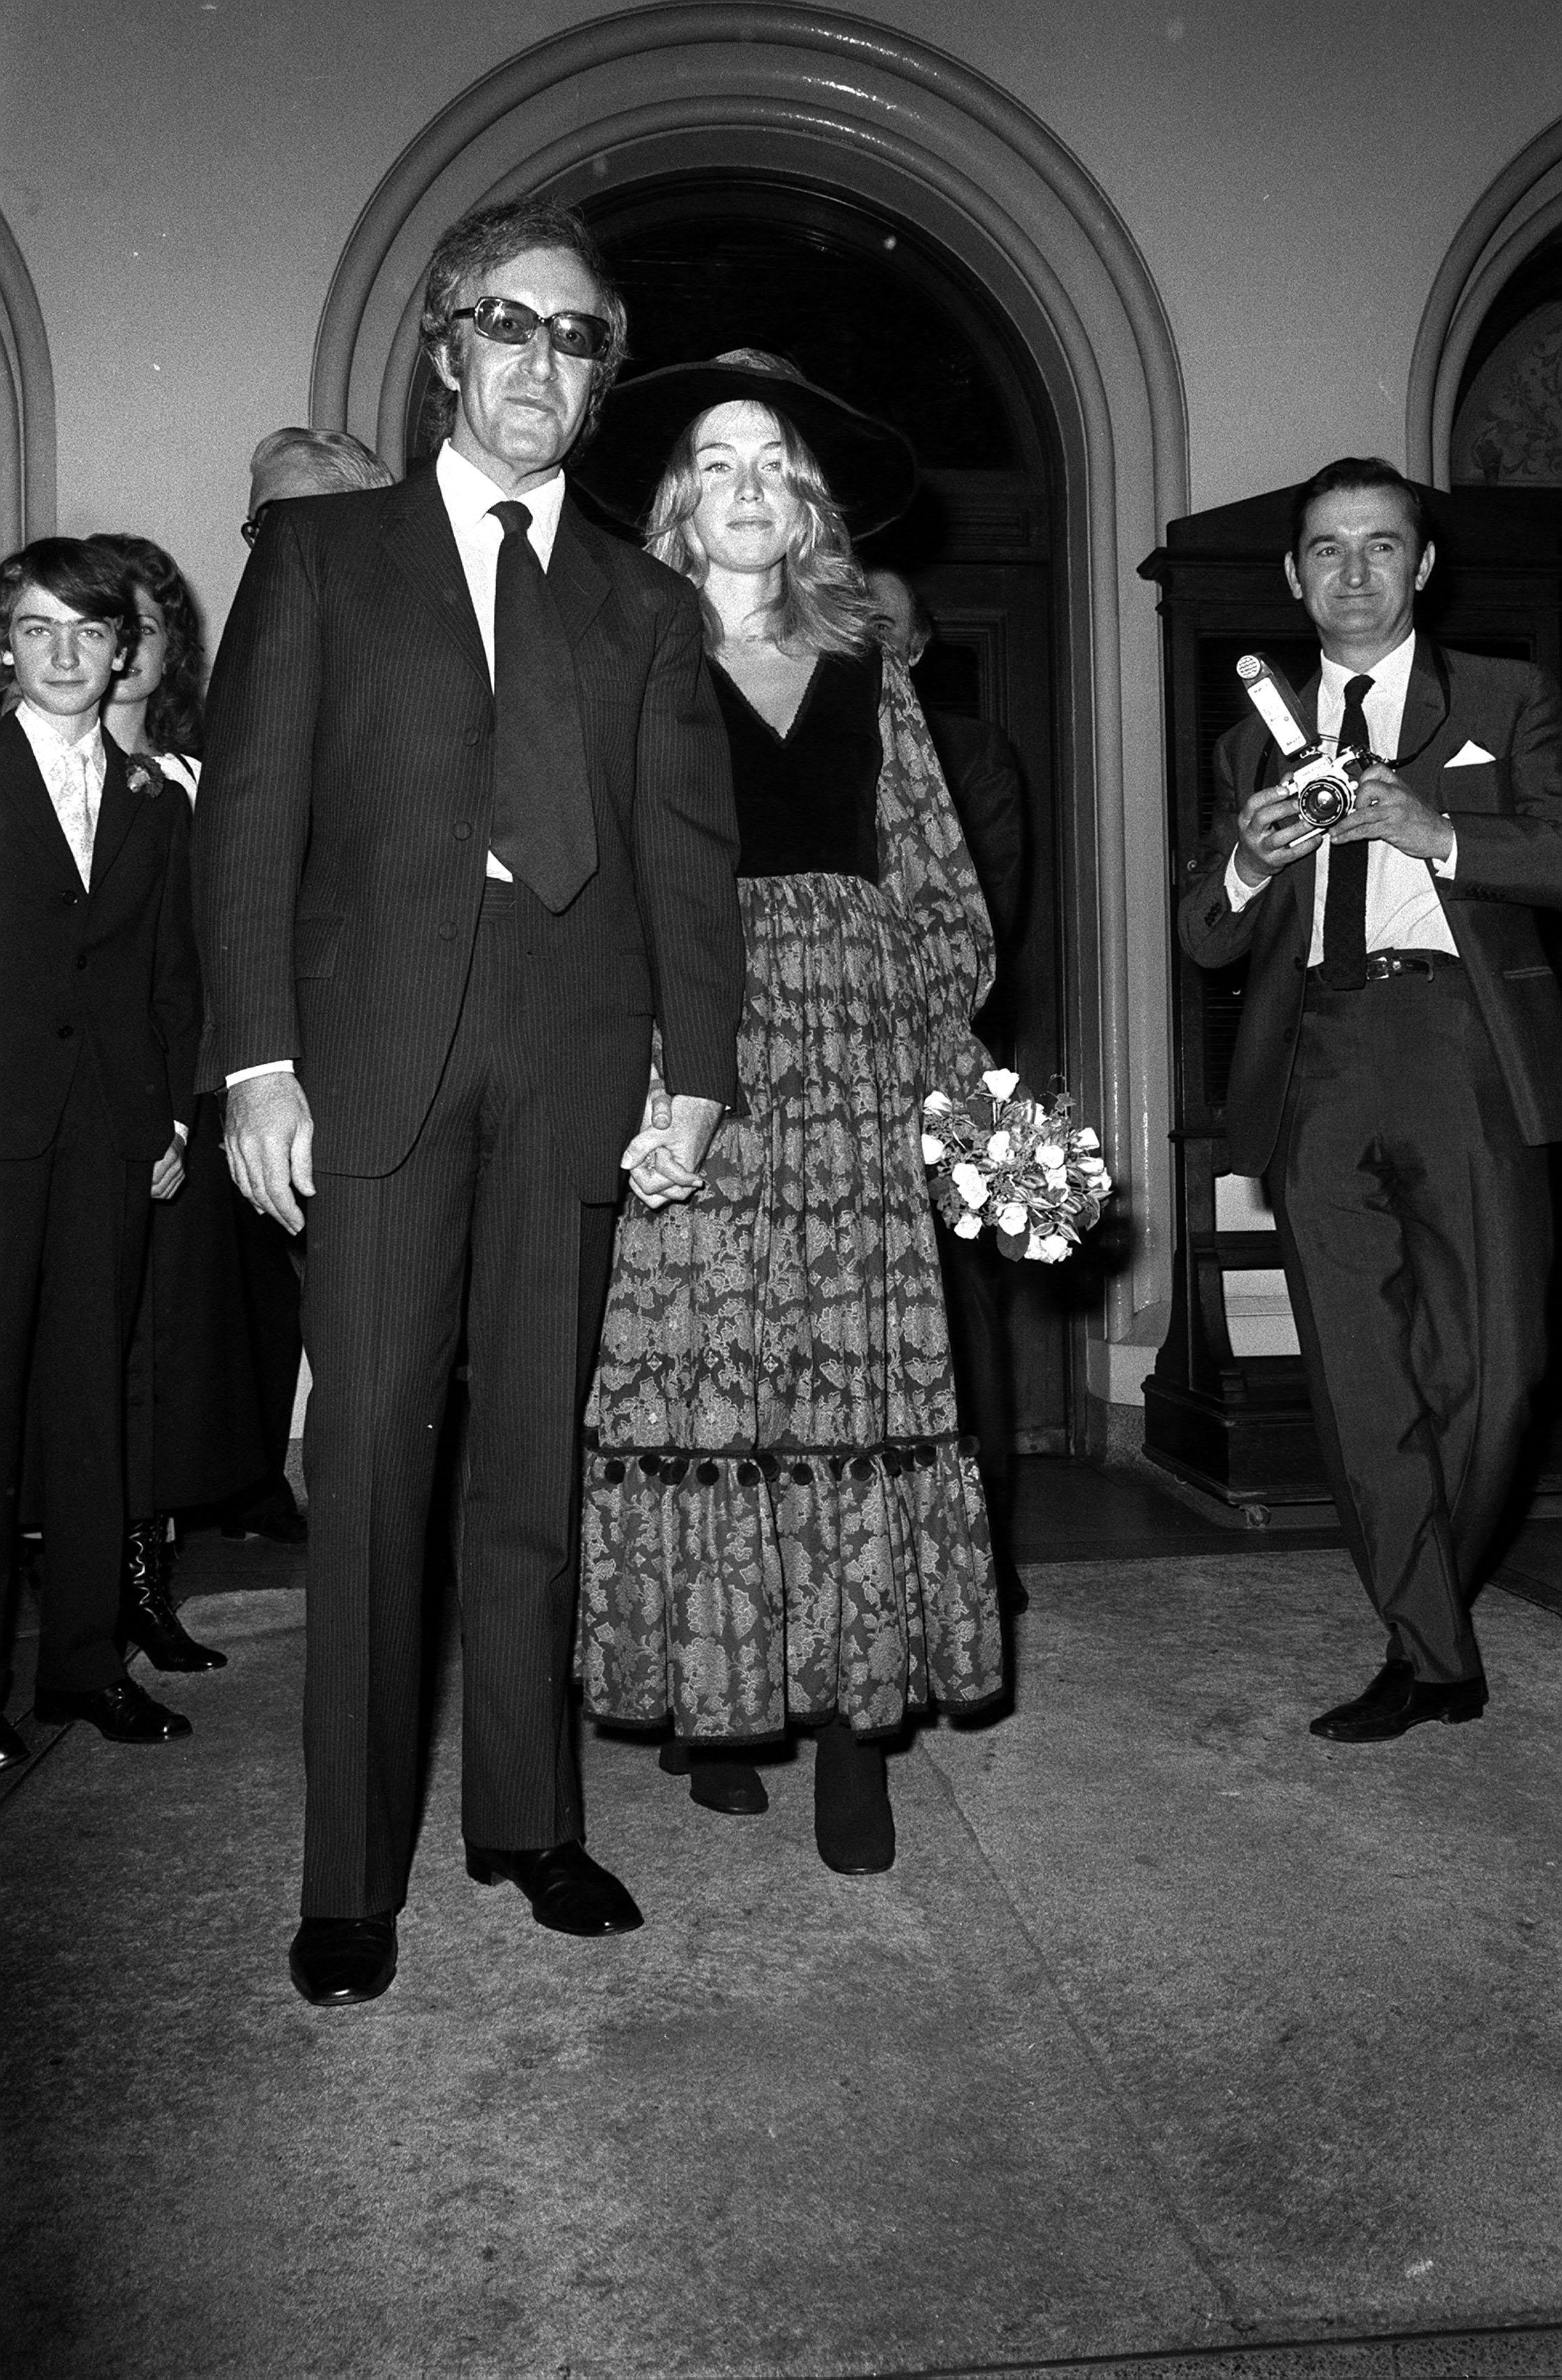 Peter Sellers, in conventional dark pin-stripped suit, and his bride, the former Miranda Quarry, in rich puce-coloured Gypsy-styled maxi dress, after their marriage at Caxton Hall Register Office. * The Bride is step daughter of Cunard deputy chairman Lord Mancroft. Her dogs were her bridesmaids and Sellers left her during the honeymoon. It was Sellers third marriage. His first, to Anne Howard, in 1951, was dissolved in 1964. He married actress Britt Eckland the same year.